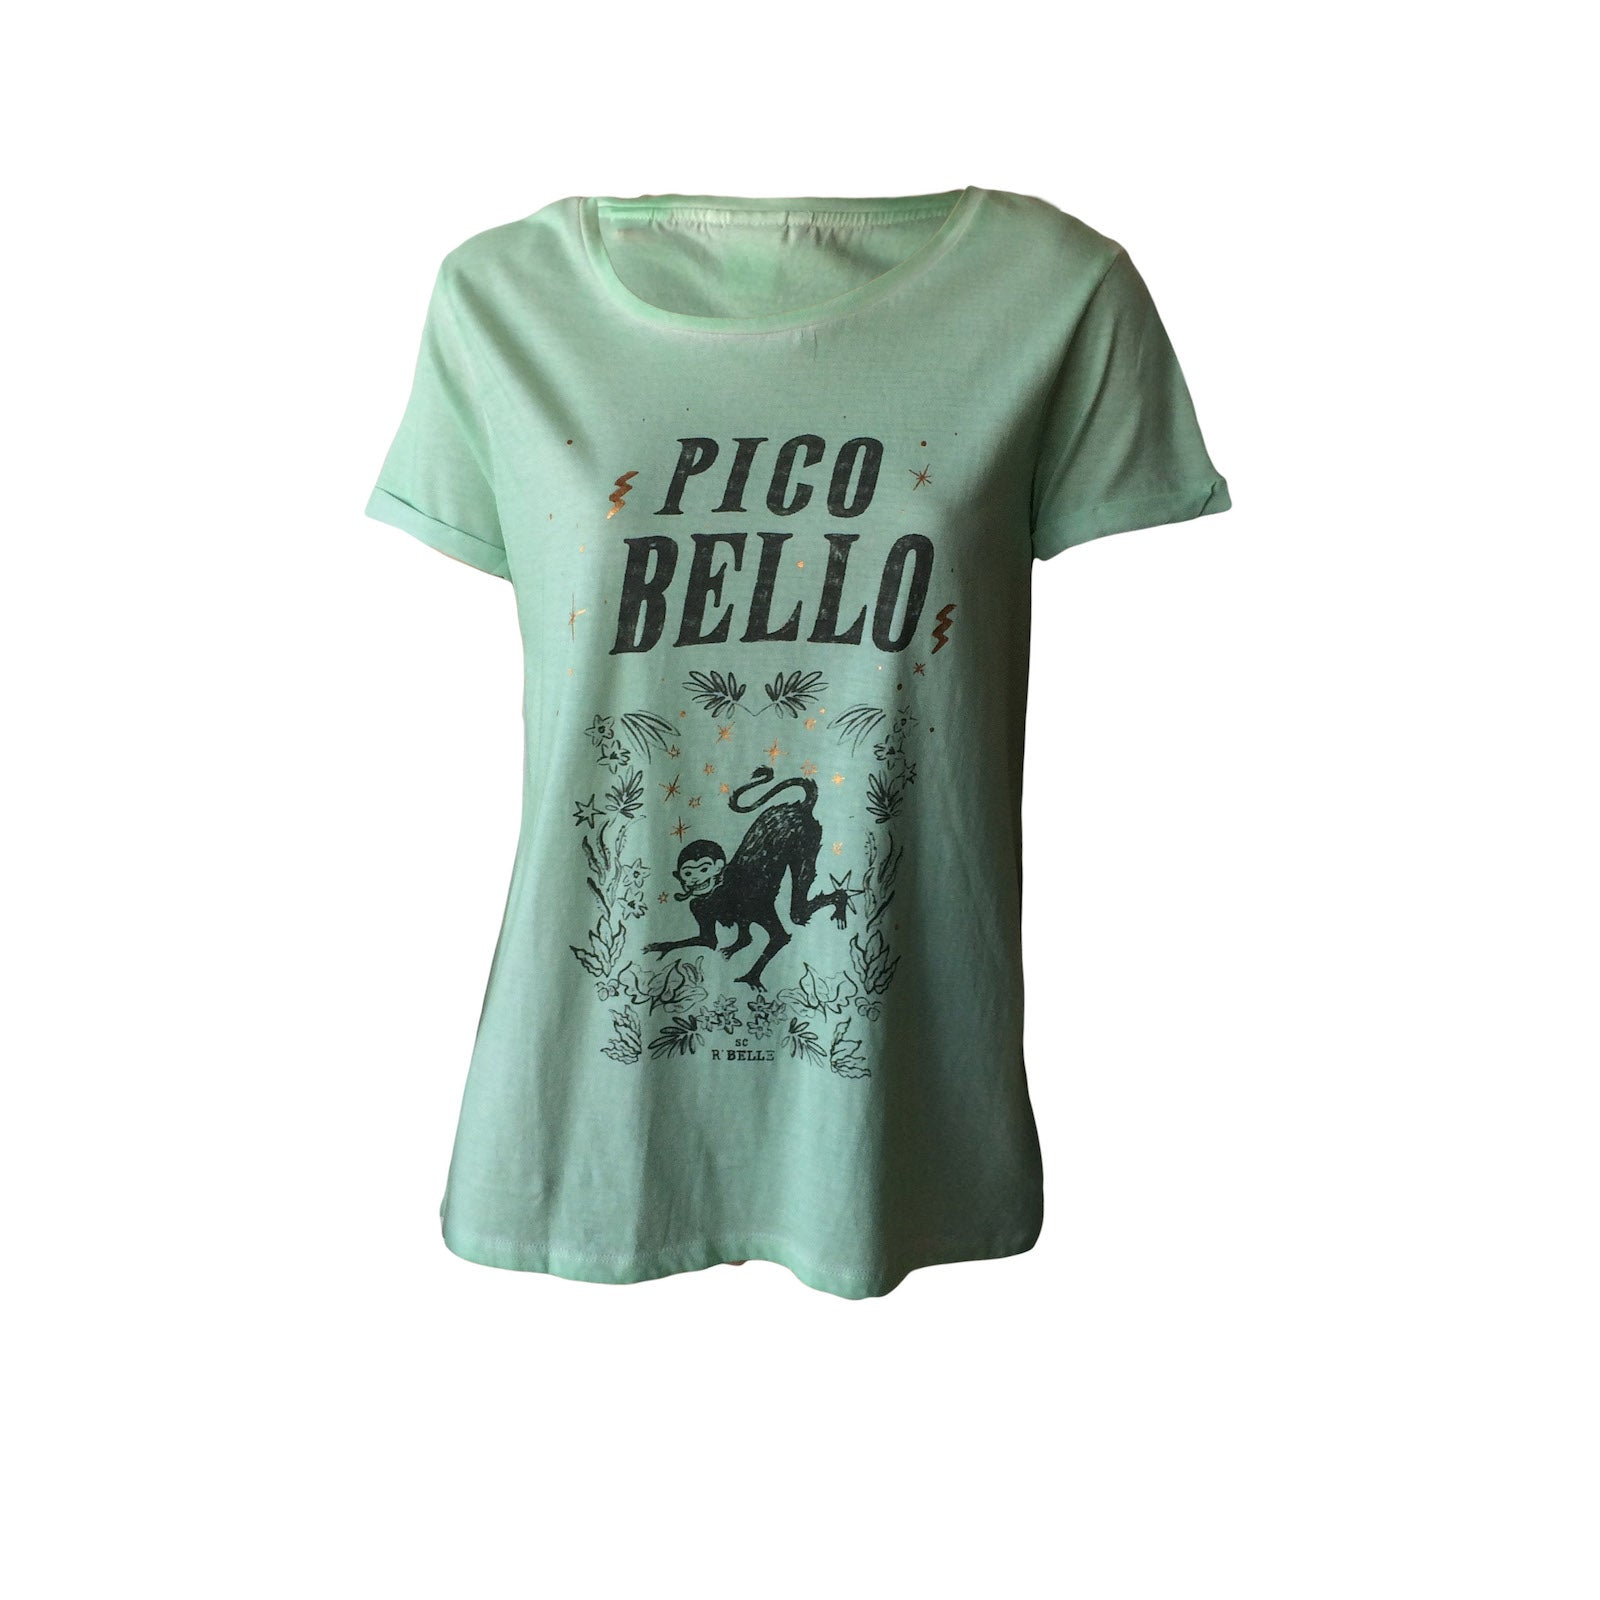 The Pico Bello Tee in pale mint by Scotch R